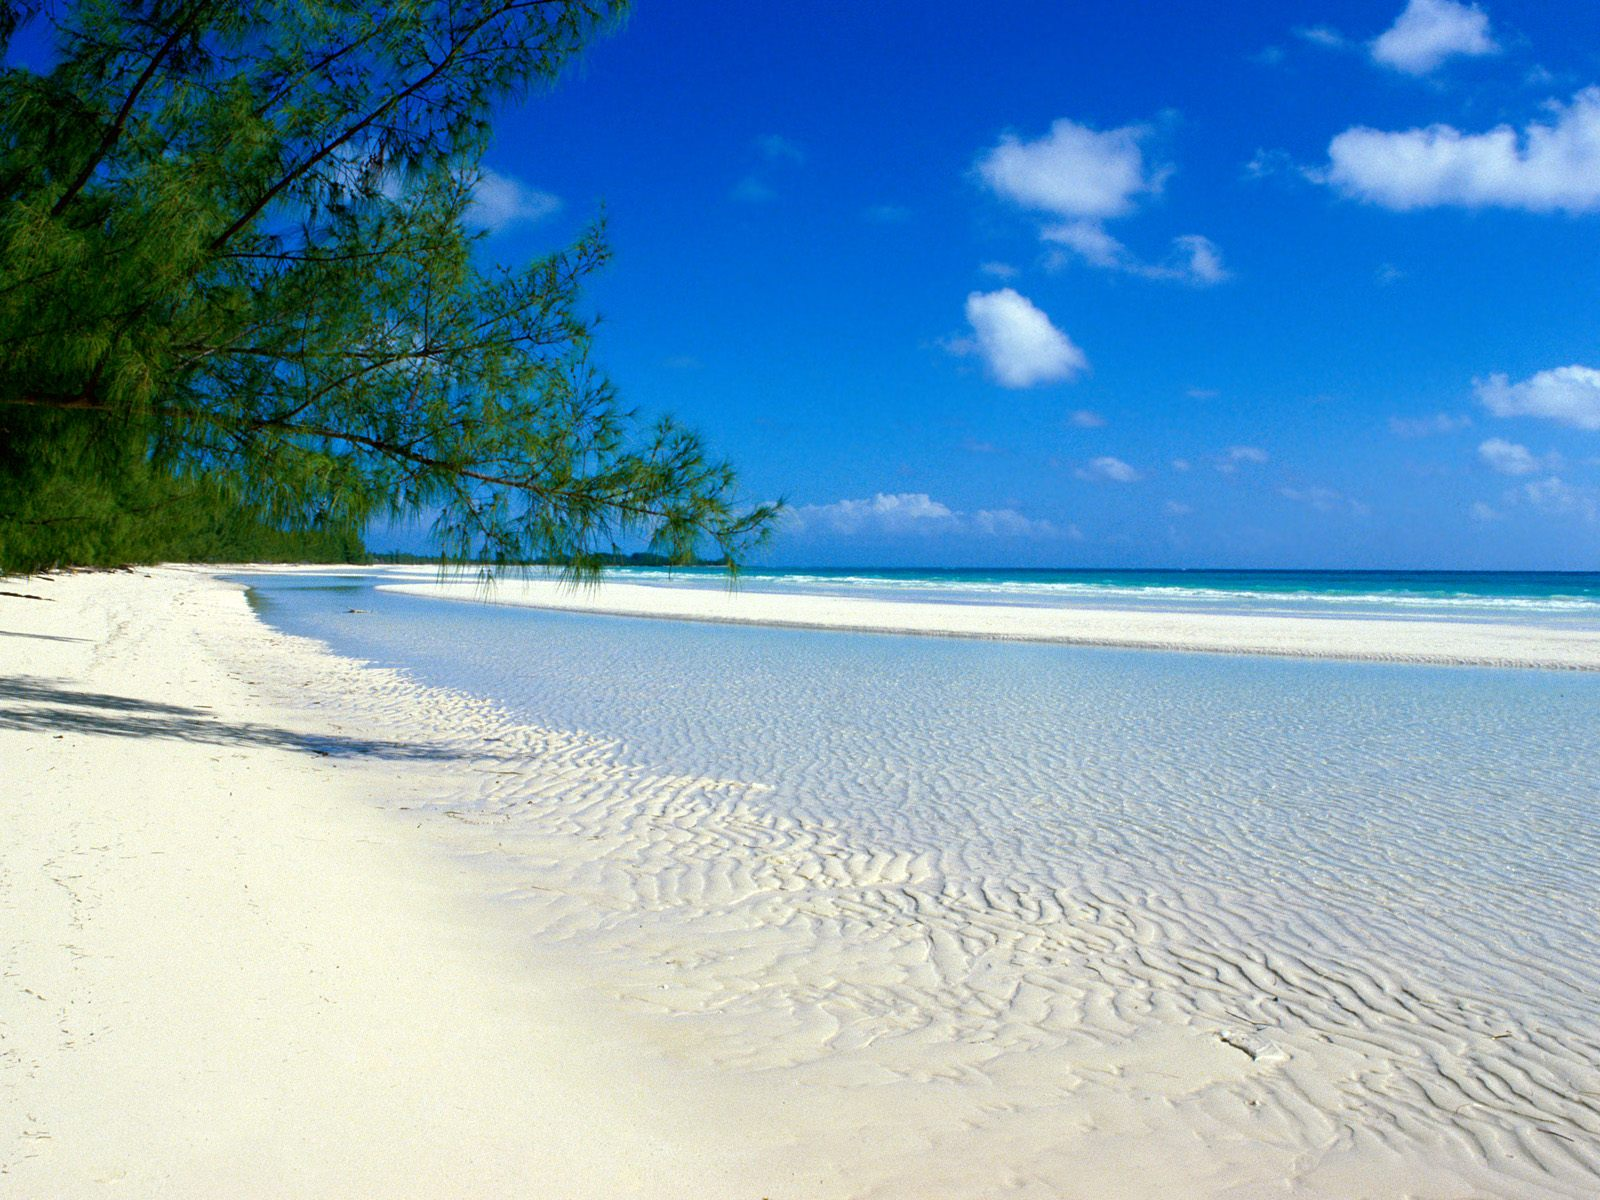 http://2.bp.blogspot.com/-6tdL7Q1wGA4/T9w0DDIk5NI/AAAAAAAABDQ/aFOCOG6uMXg/s1600/The-best-top-desktop-beach-wallpapers-hd-beach-wallpaper-34.jpeg